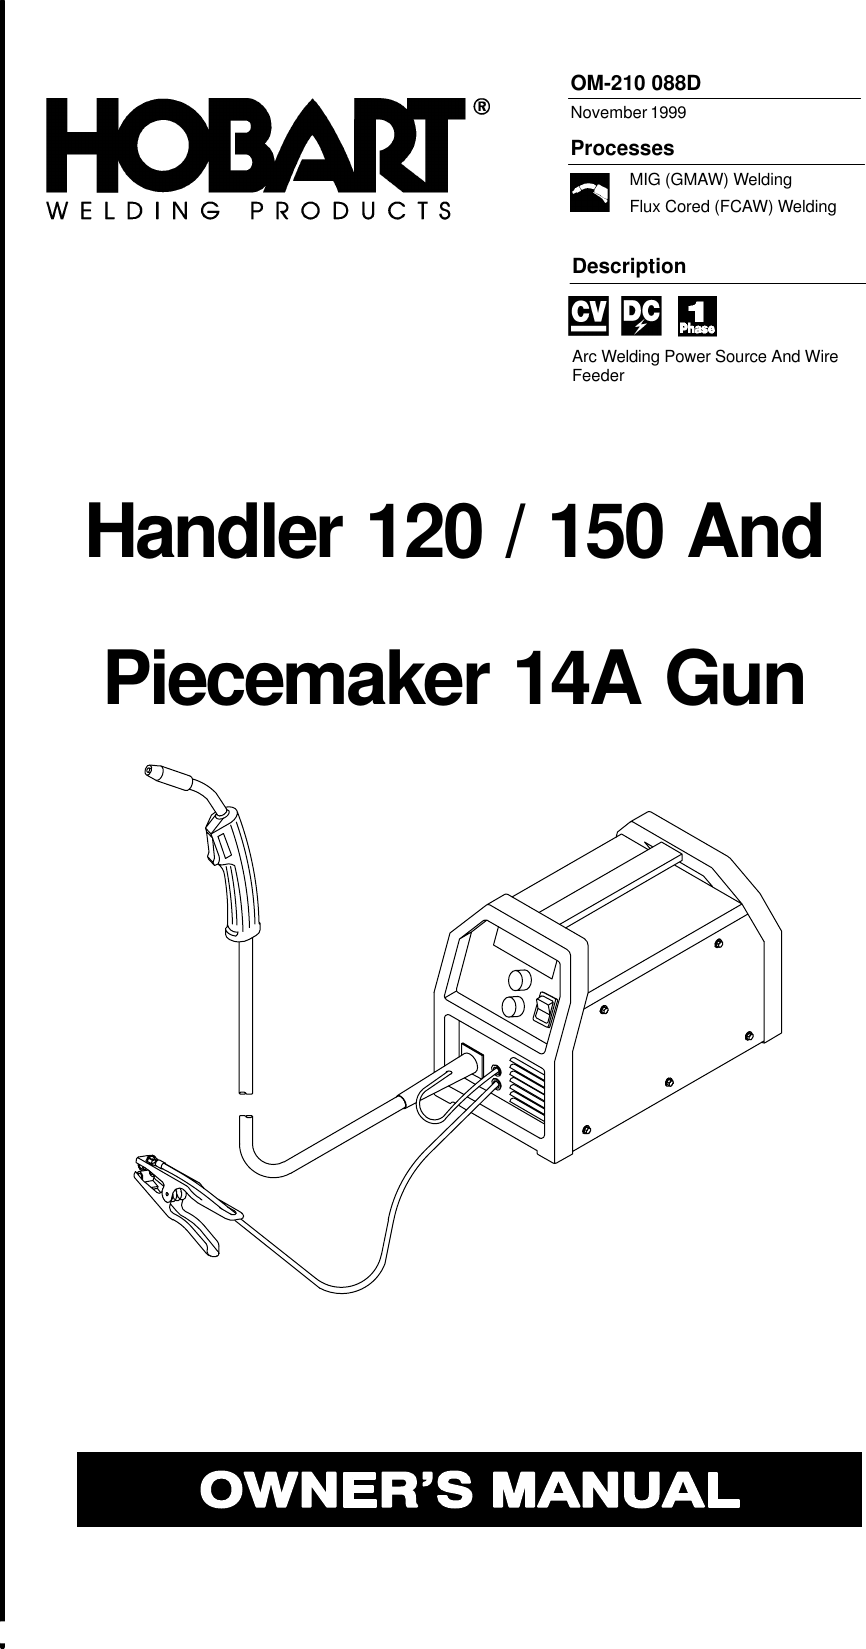 Hobart Handler 120 Owners Manual ManualsLib Makes It Easy To ... on old hobart welder parts, old hobart welder generator, old hobart welder manual,